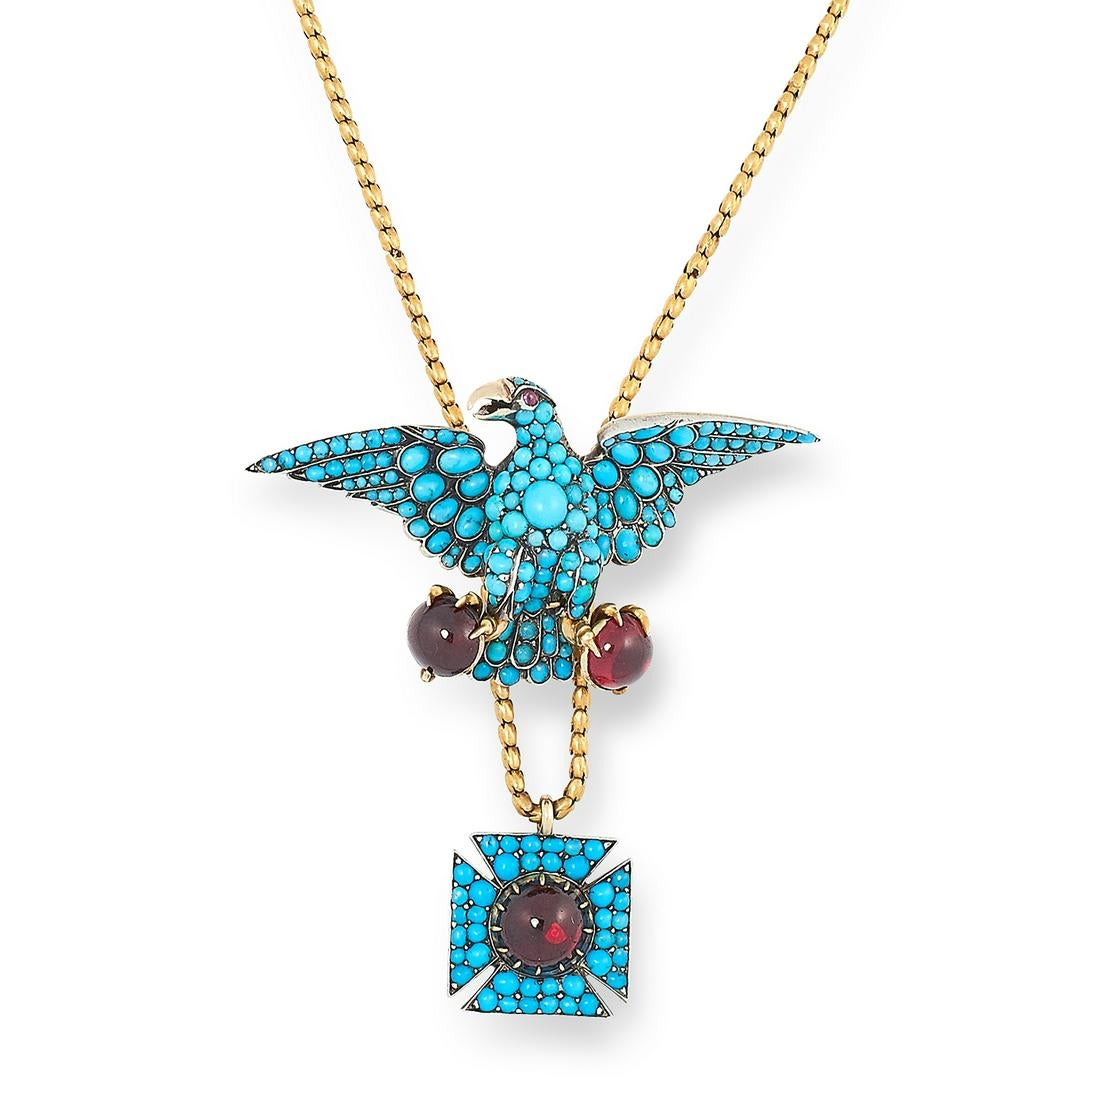 ANTIQUE TURQUOISE AND GARNET COBURG EAGLE NECKLACE